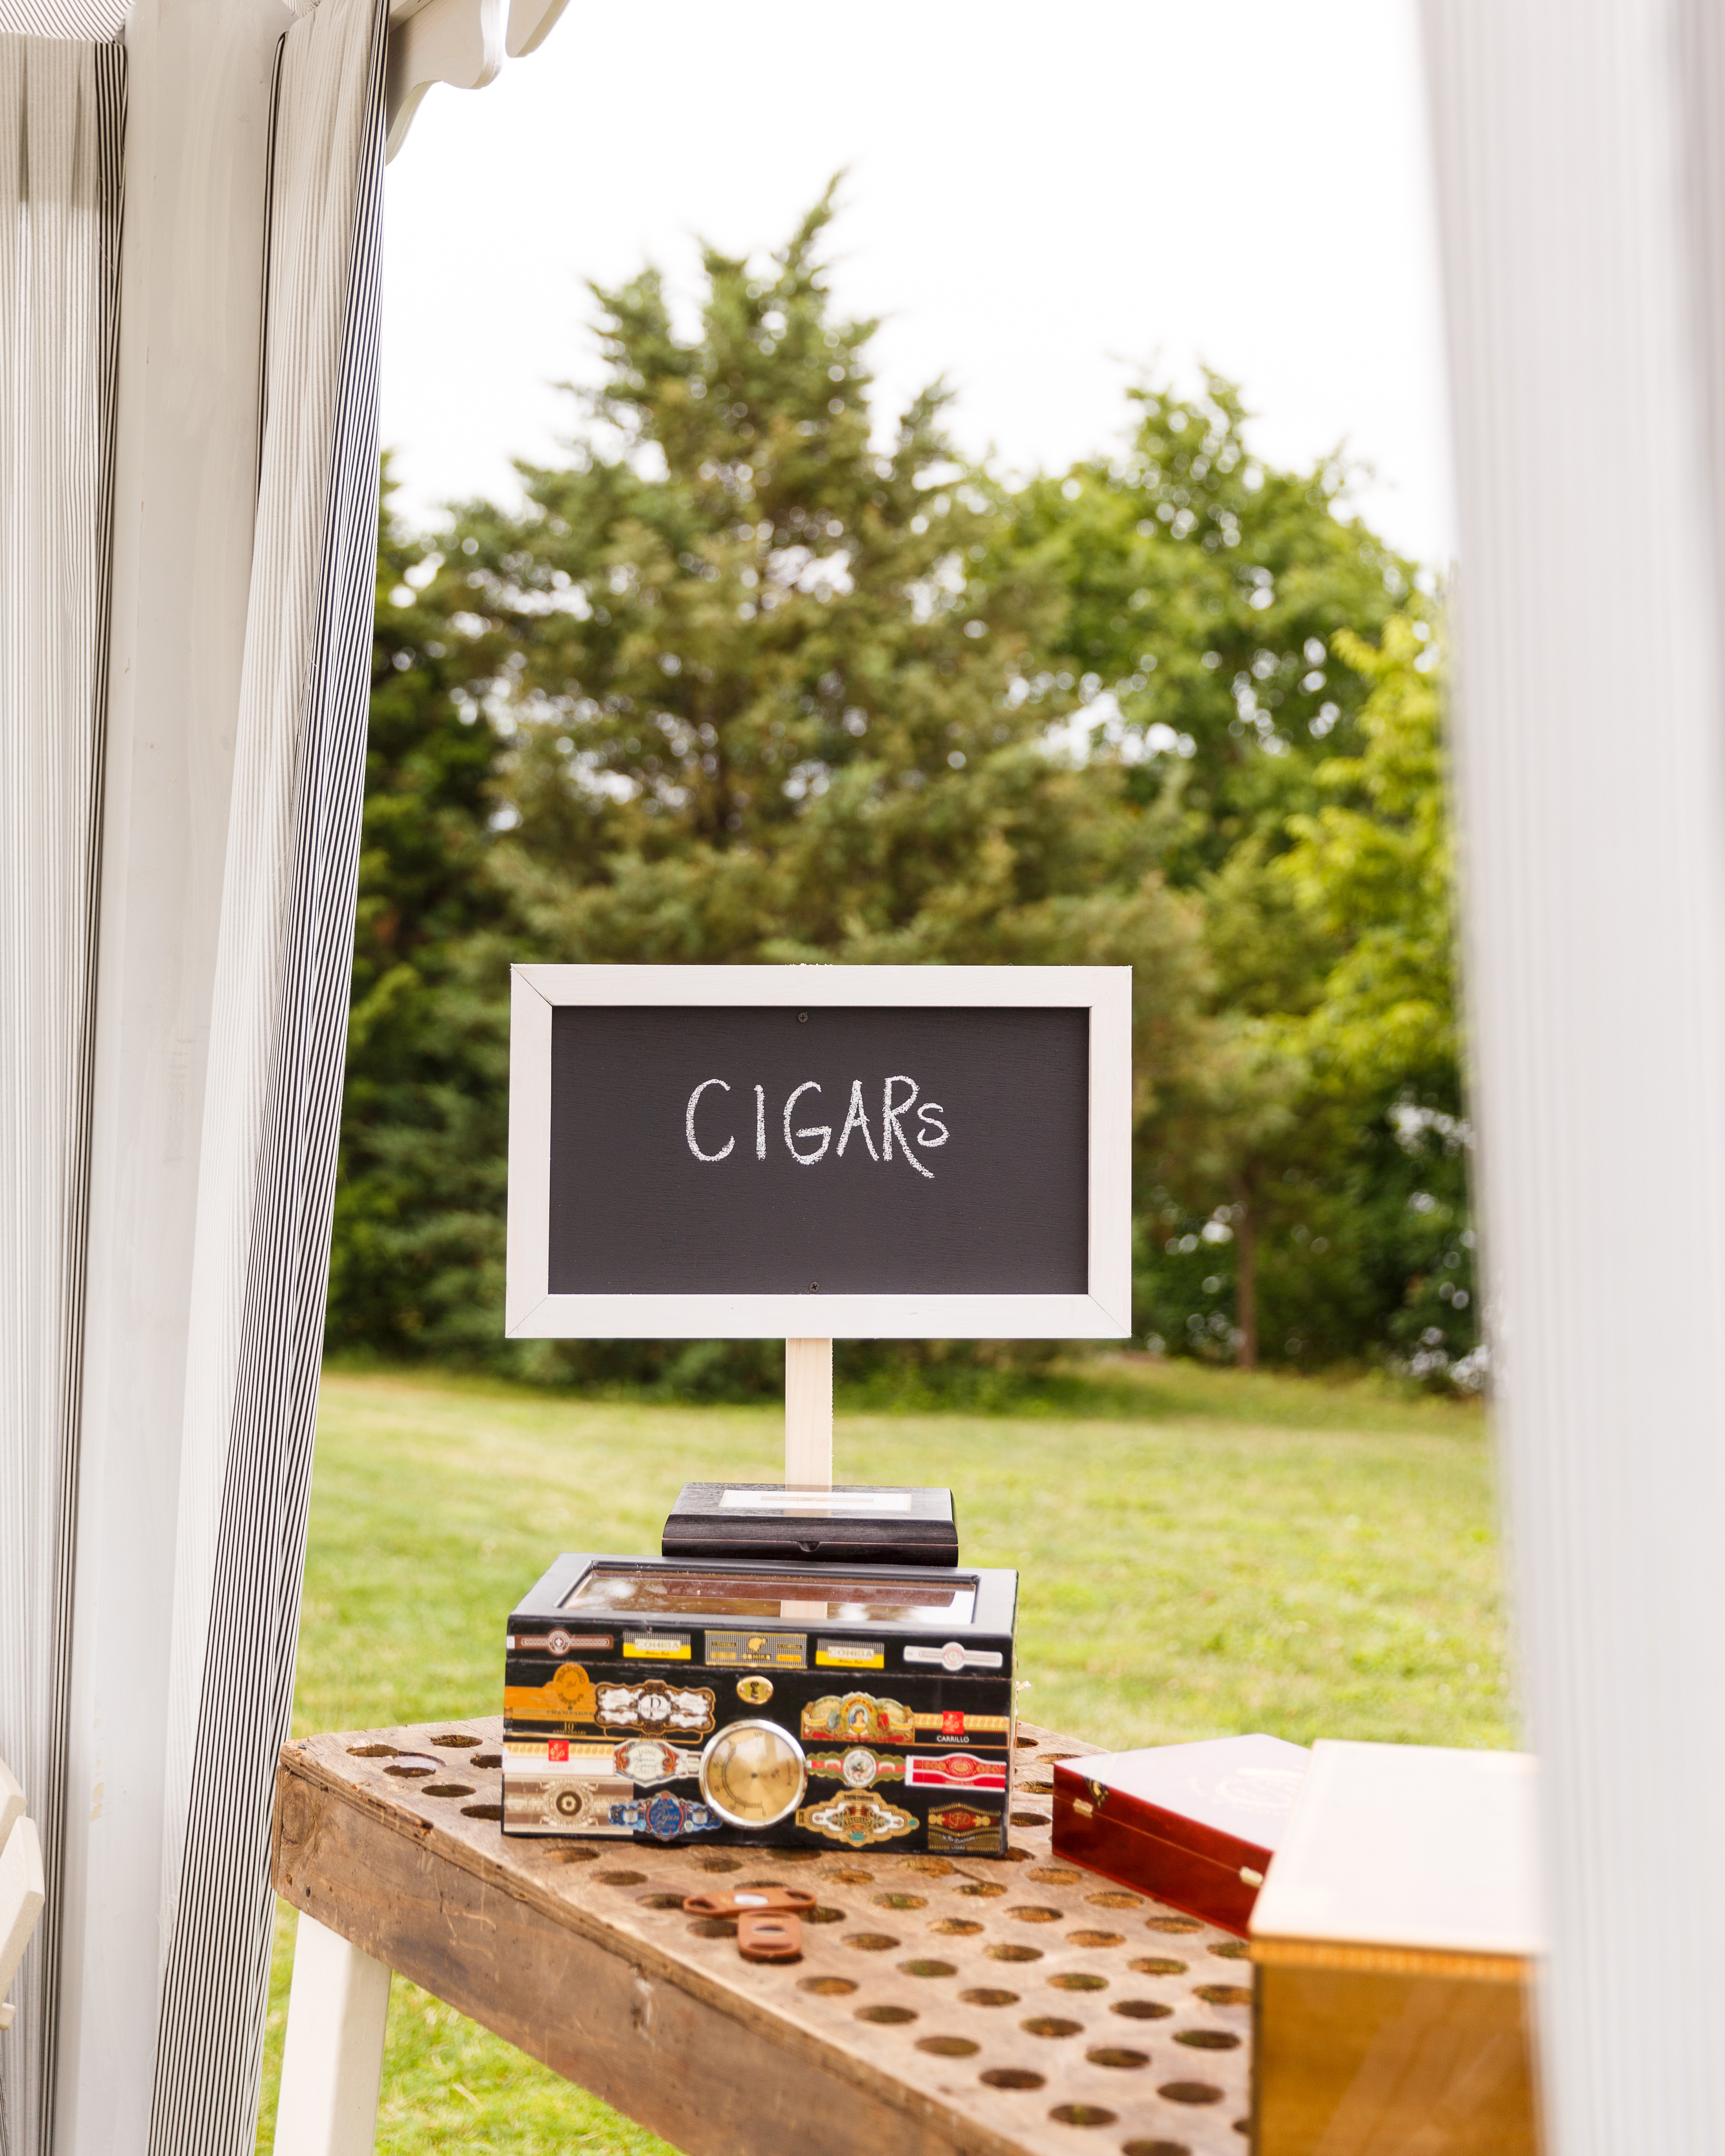 kristel-austin-wedding-cigars-0893-s11860-0415.jpg